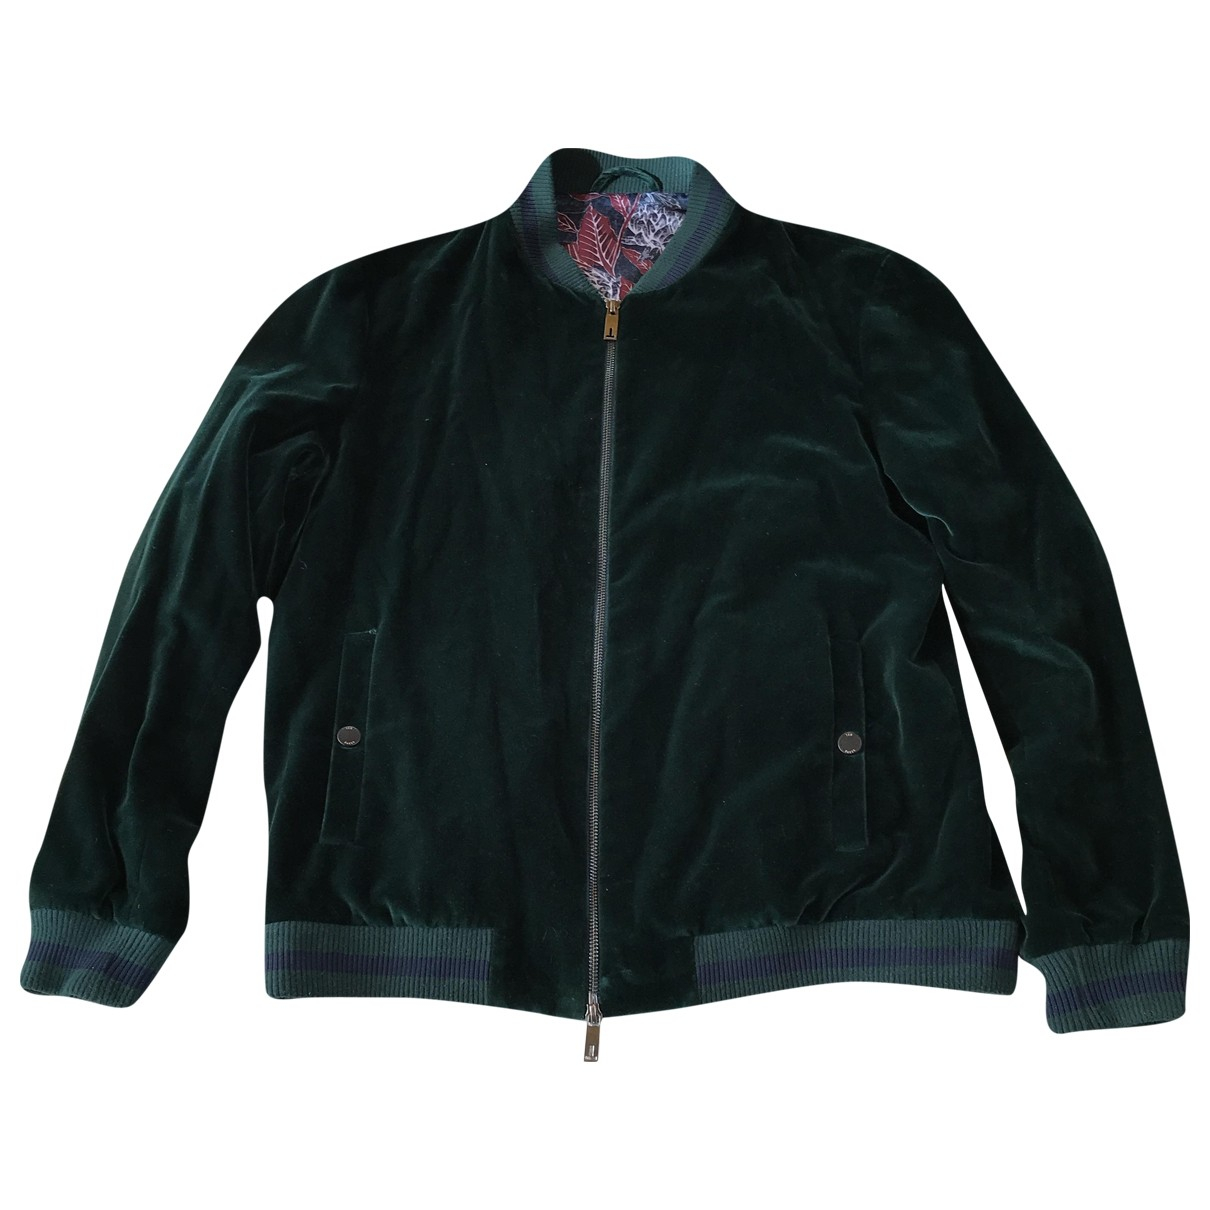 Ted Baker N Green Velvet jacket  for Men 40 UK - US